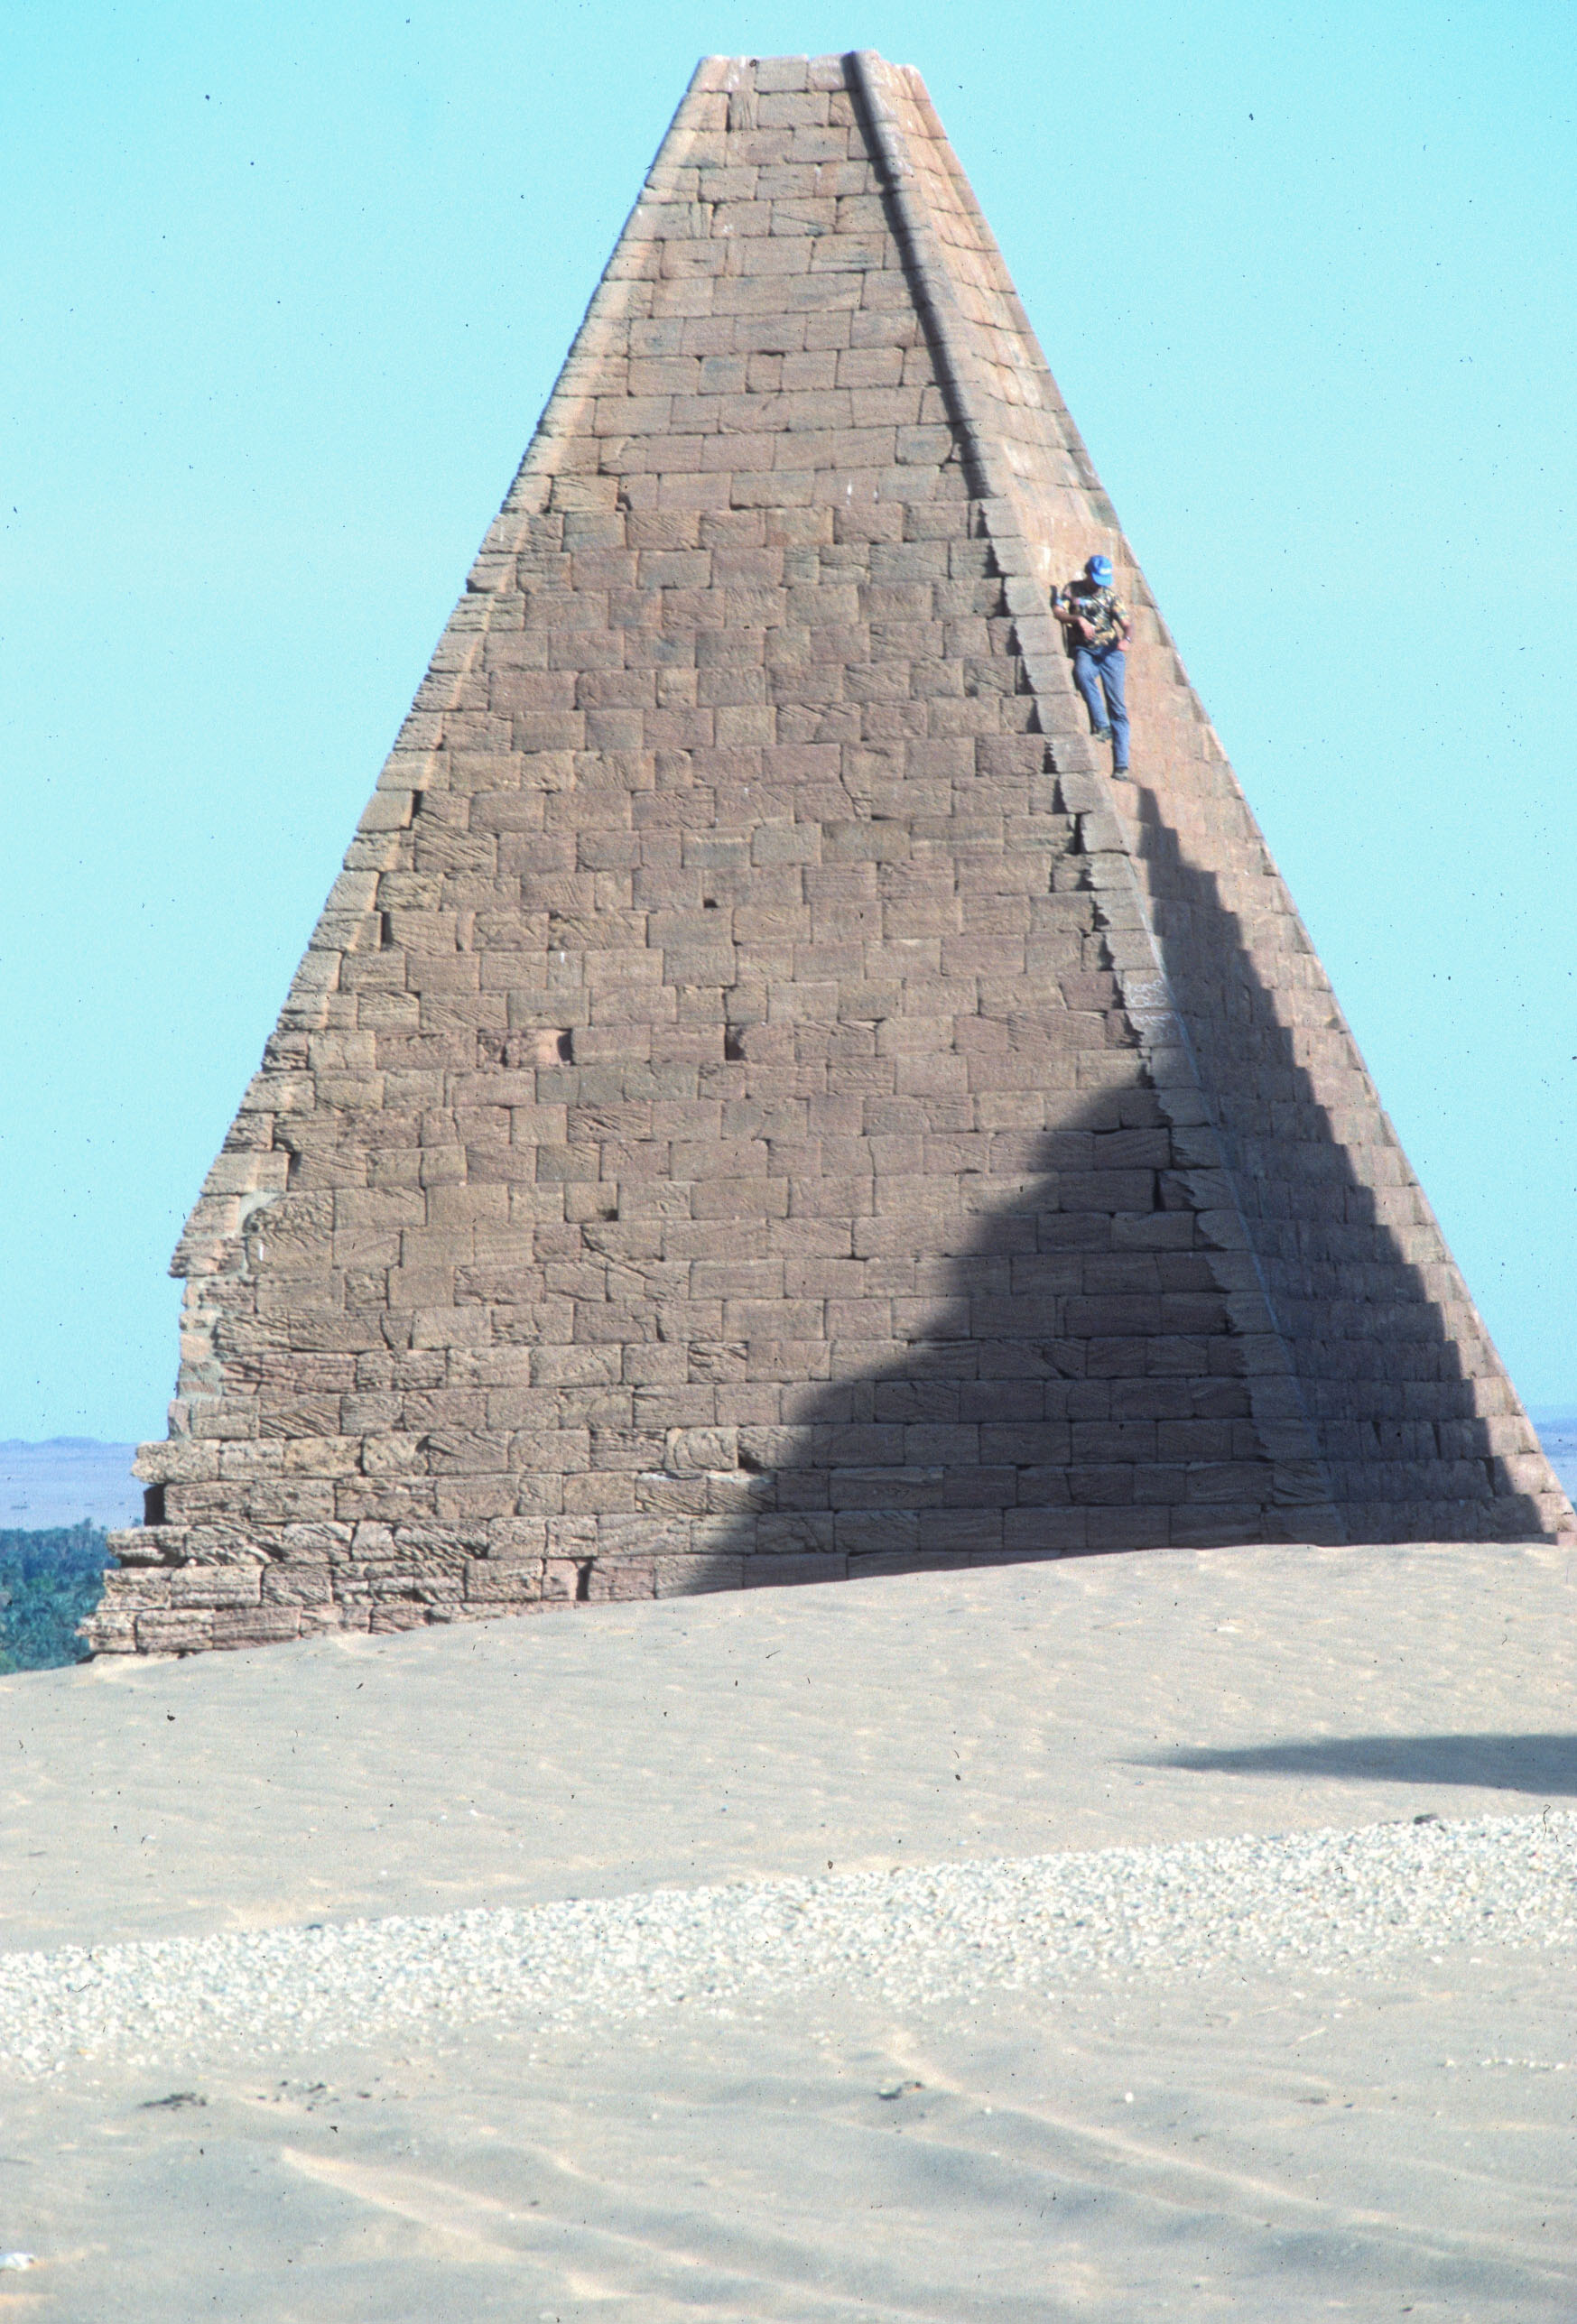 File:Steep Pyramid.jpg - Wikimedia Commons